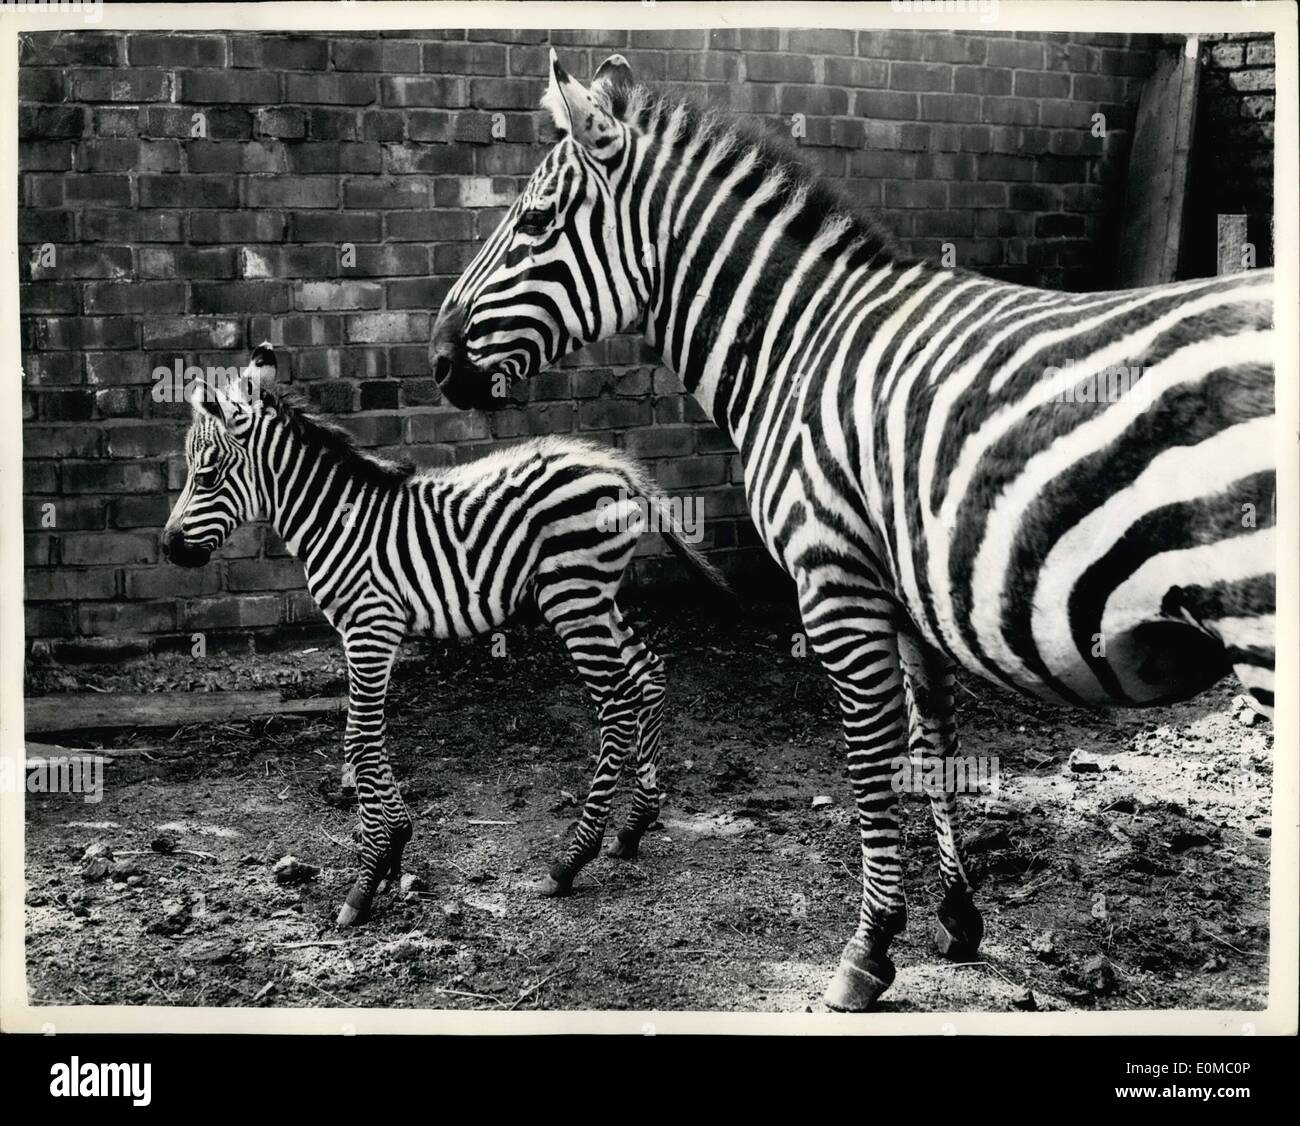 Jun. 06, 1954 - Baby Male Zebra Born At Belle Vue - Manchester First Time For 118 Years..: For the first time in 118 years of Bella Vue, a male baby Zebra has been born,, The mother is ''Tilla'' and the father ''Timothy''. Phot Shows Tilla - with her one day old son  at Belle Vue, Manchester. - Stock Image